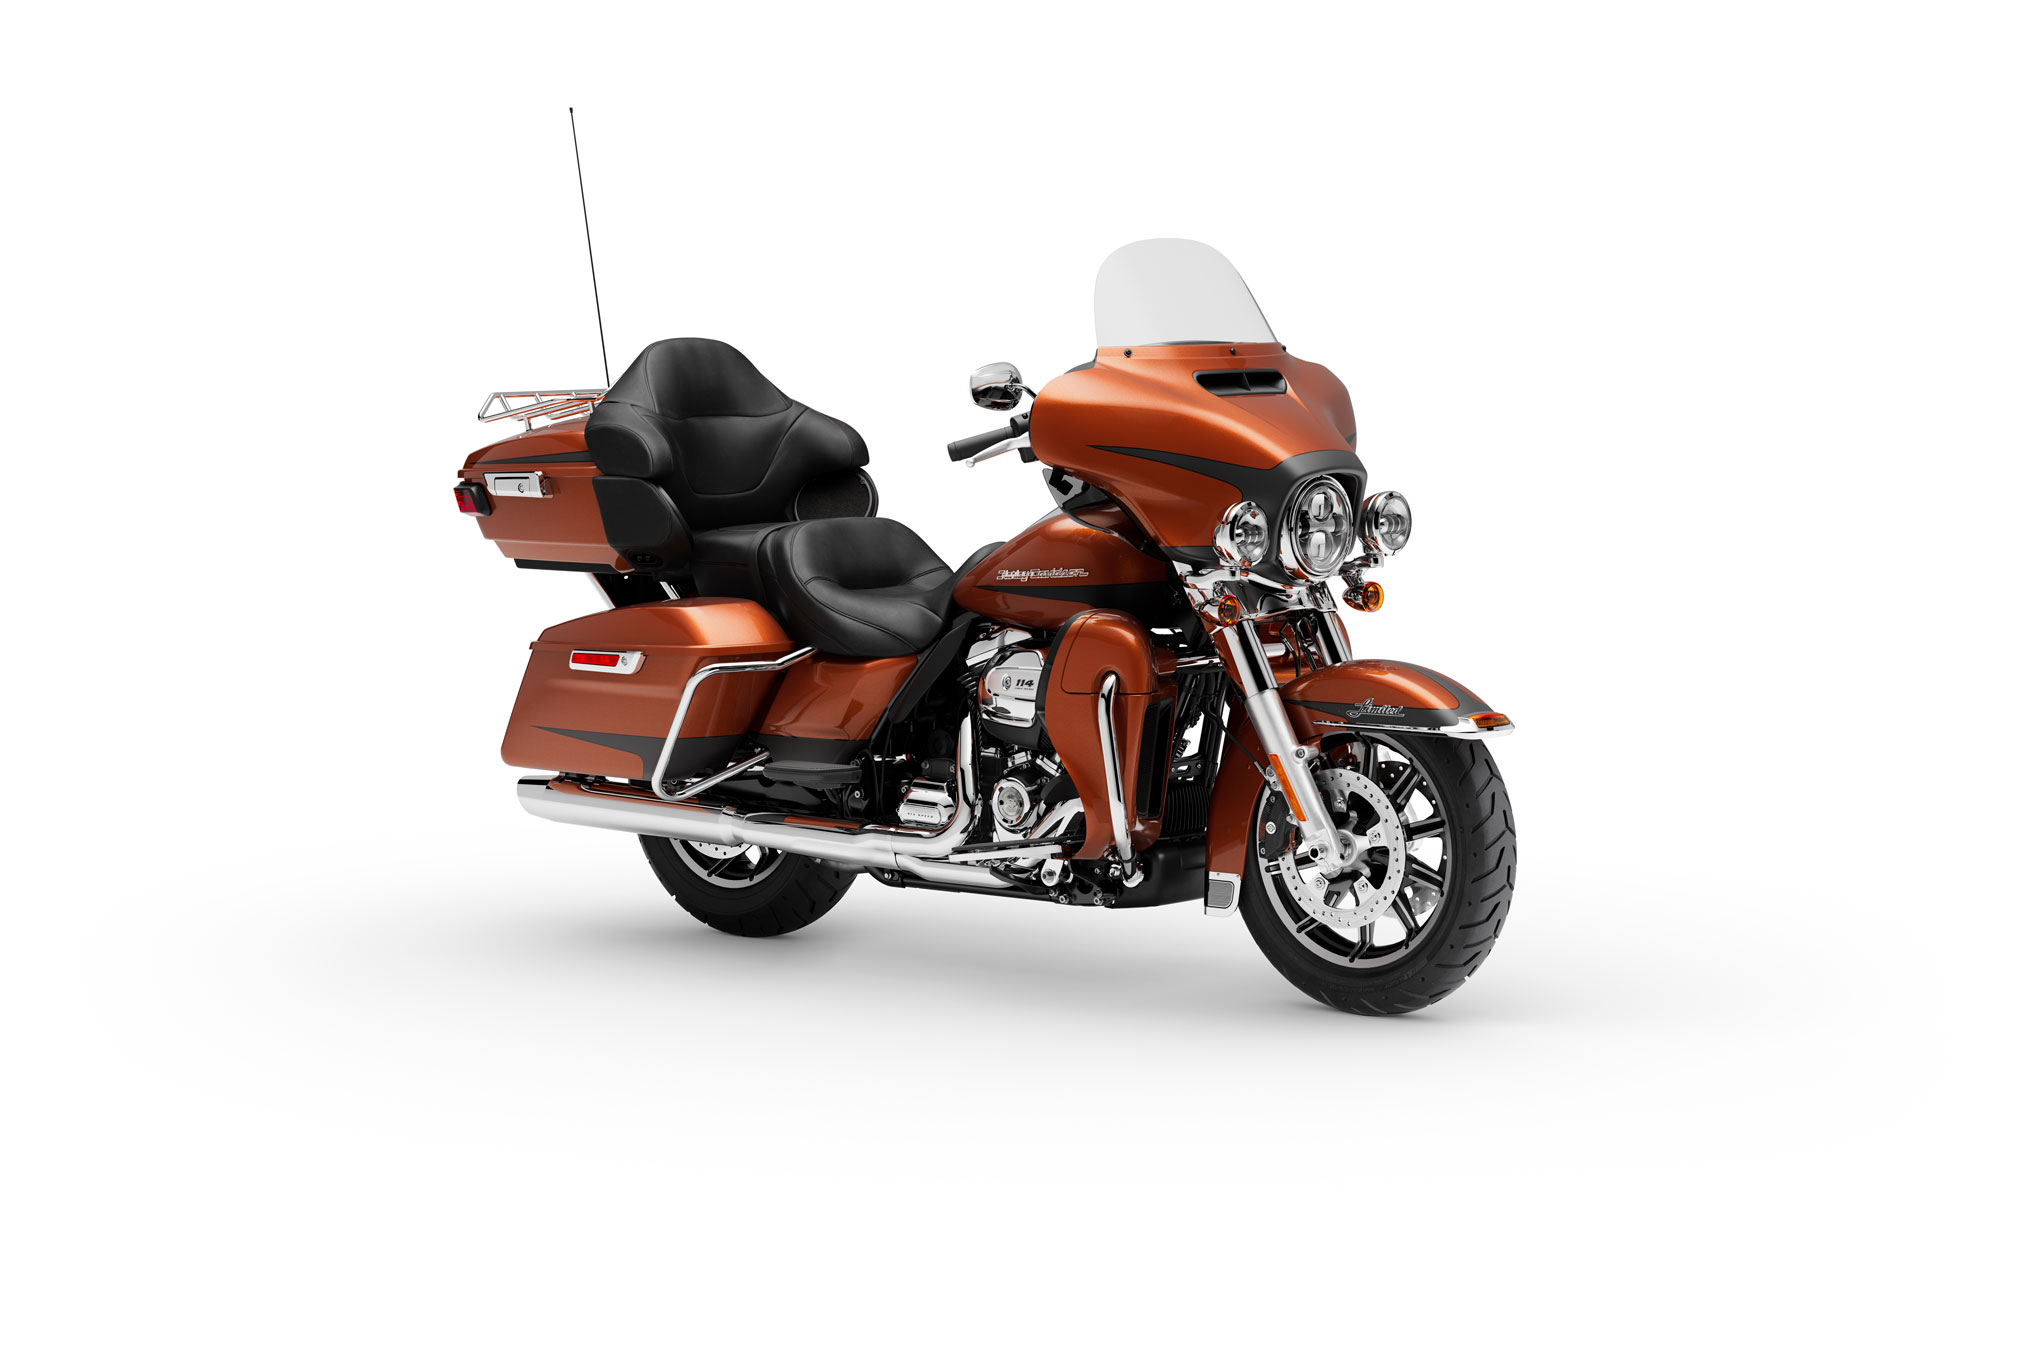 2019 Harley-Davidson Ultra Limited Guide • Total Motorcycle on cf moto wiring diagram, harley speedometer wiring, ktm 450 wiring diagram, tomos wiring diagram, harley bar and shield dxf, harley softail wiring diagram, rupp snowmobile wiring diagram, honda motorcycle wire diagram, 2000 harley wiring diagram, husaberg wiring diagram, harley sportster wiring diagram, harley wiring diagram for dummies, marine boat wiring diagram, ktm exc wiring diagram, 2003 harley wiring diagram, harley wiring diagrams online, simple harley wiring diagram, harley touring wiring diagram, 2001 sportster ignition system diagram, nissan wiring diagram,